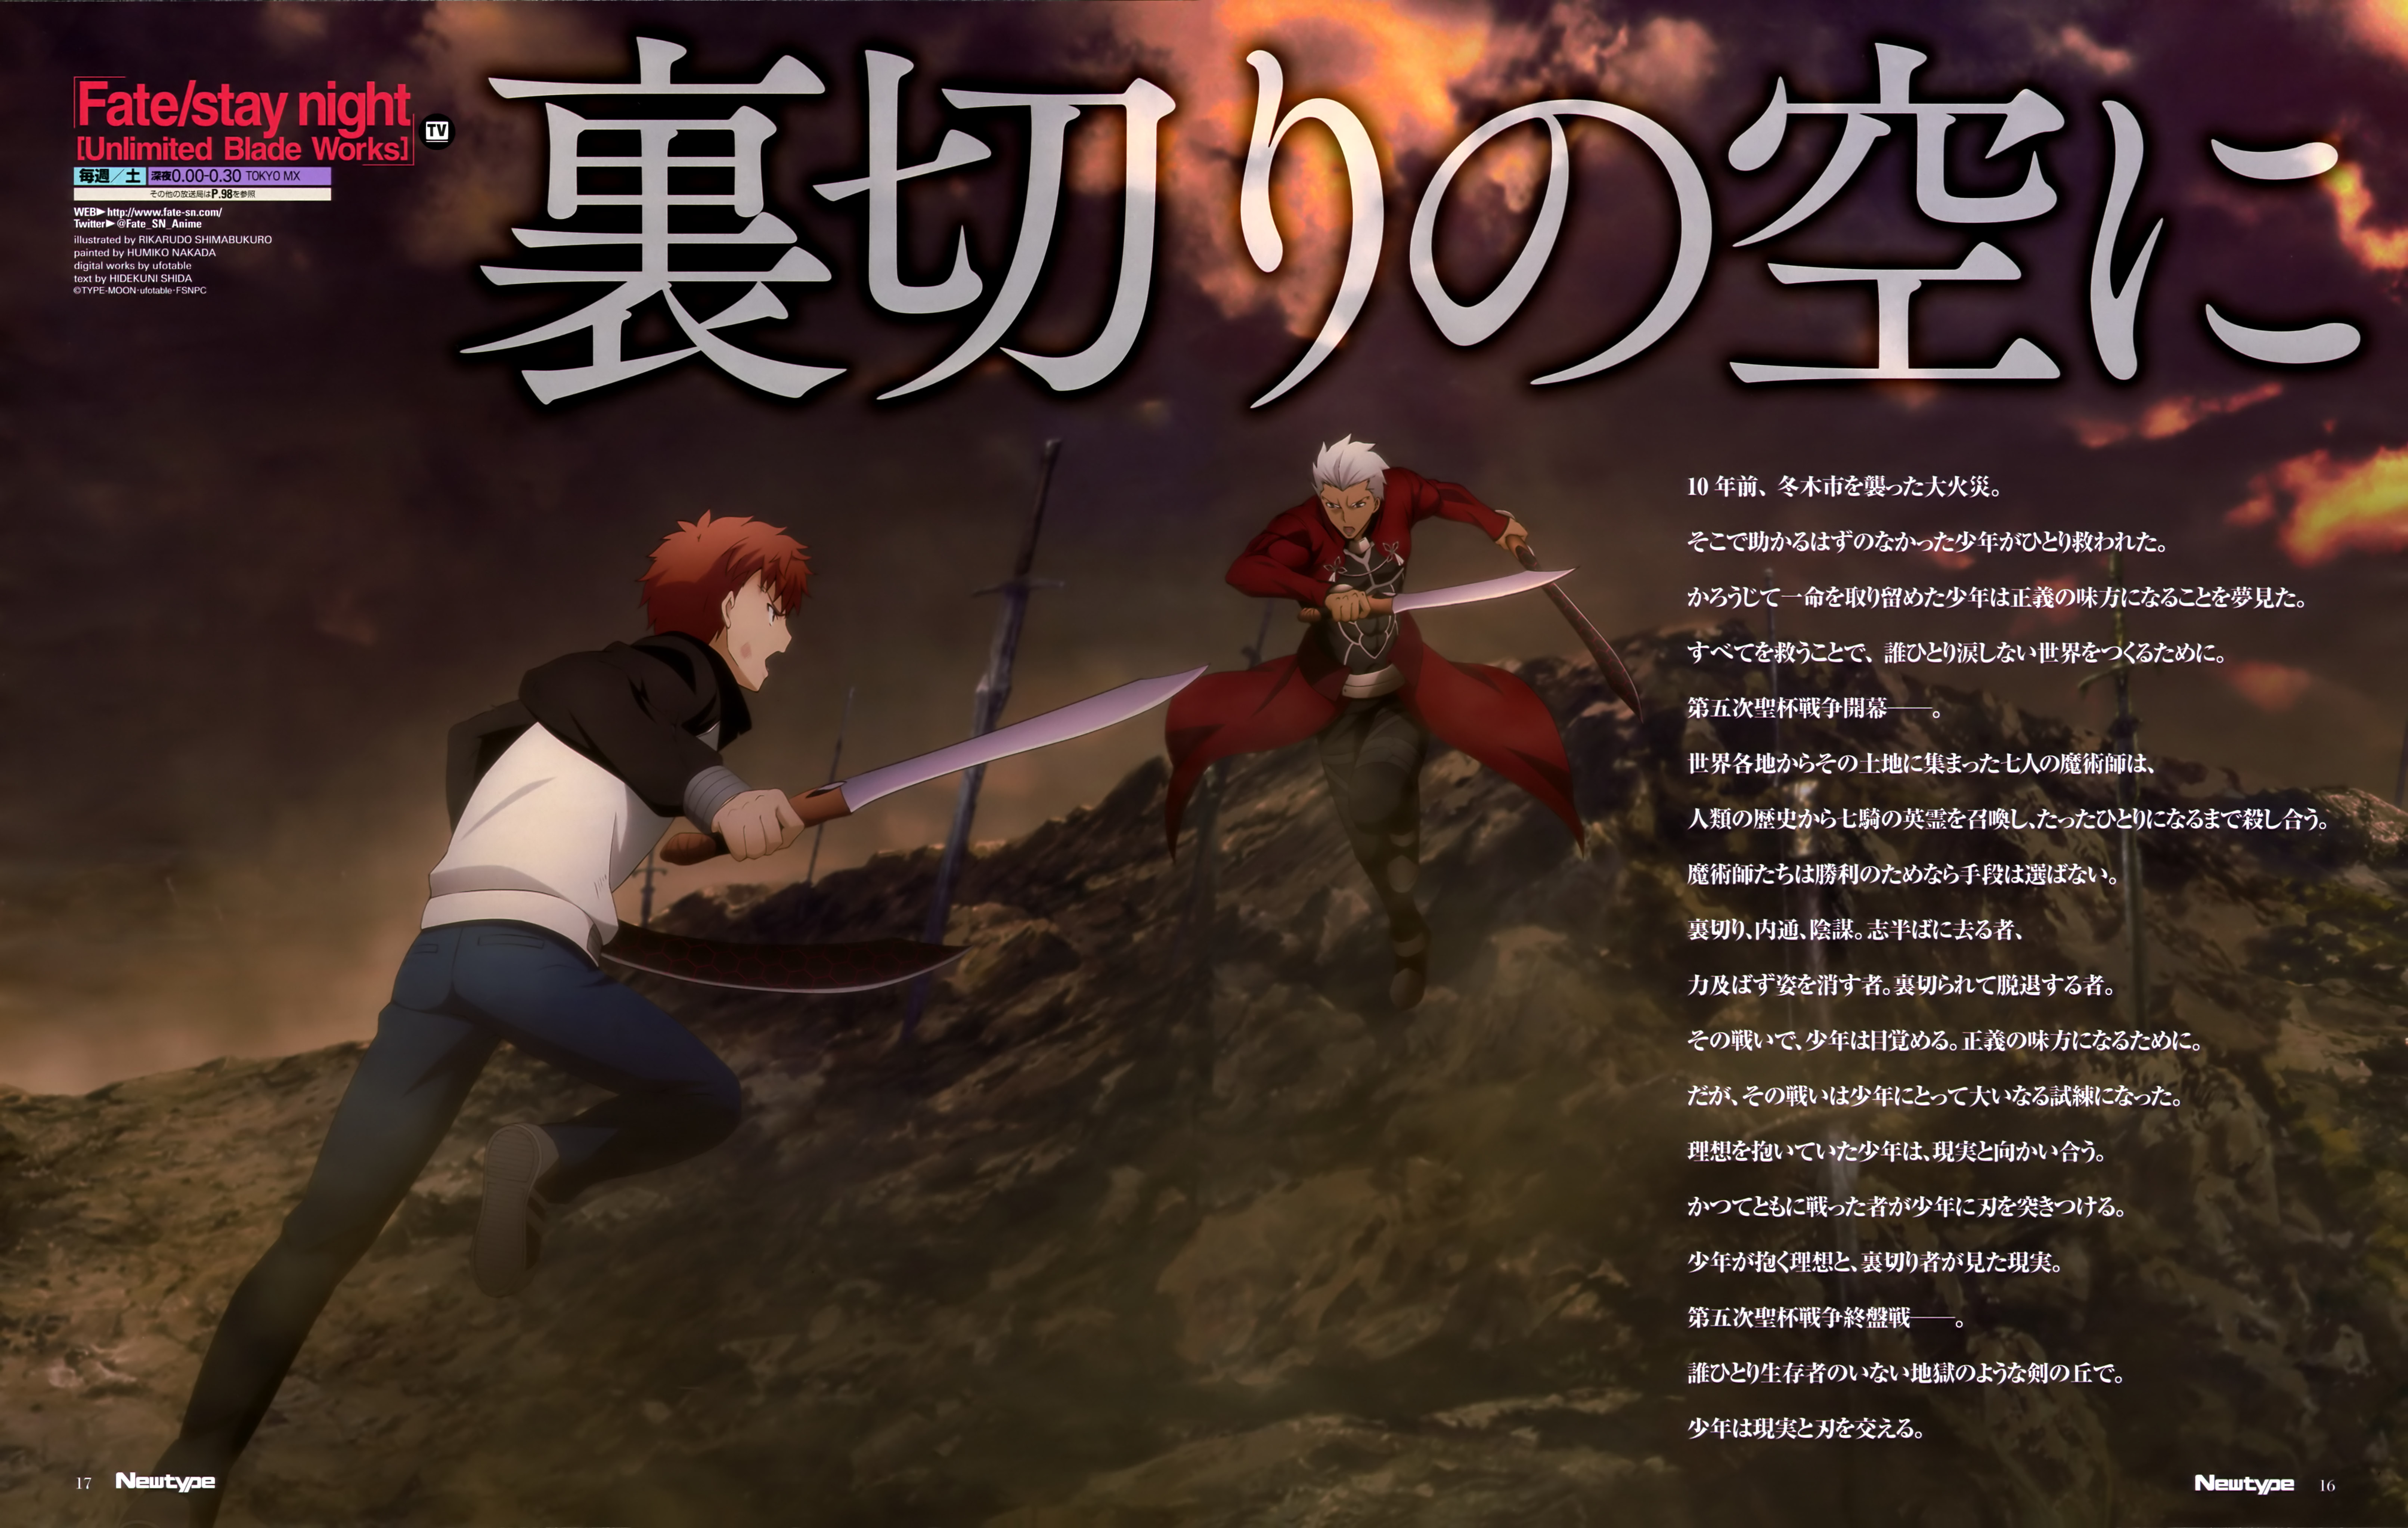 Fate Stay Night 2015 NewType Visuals 3